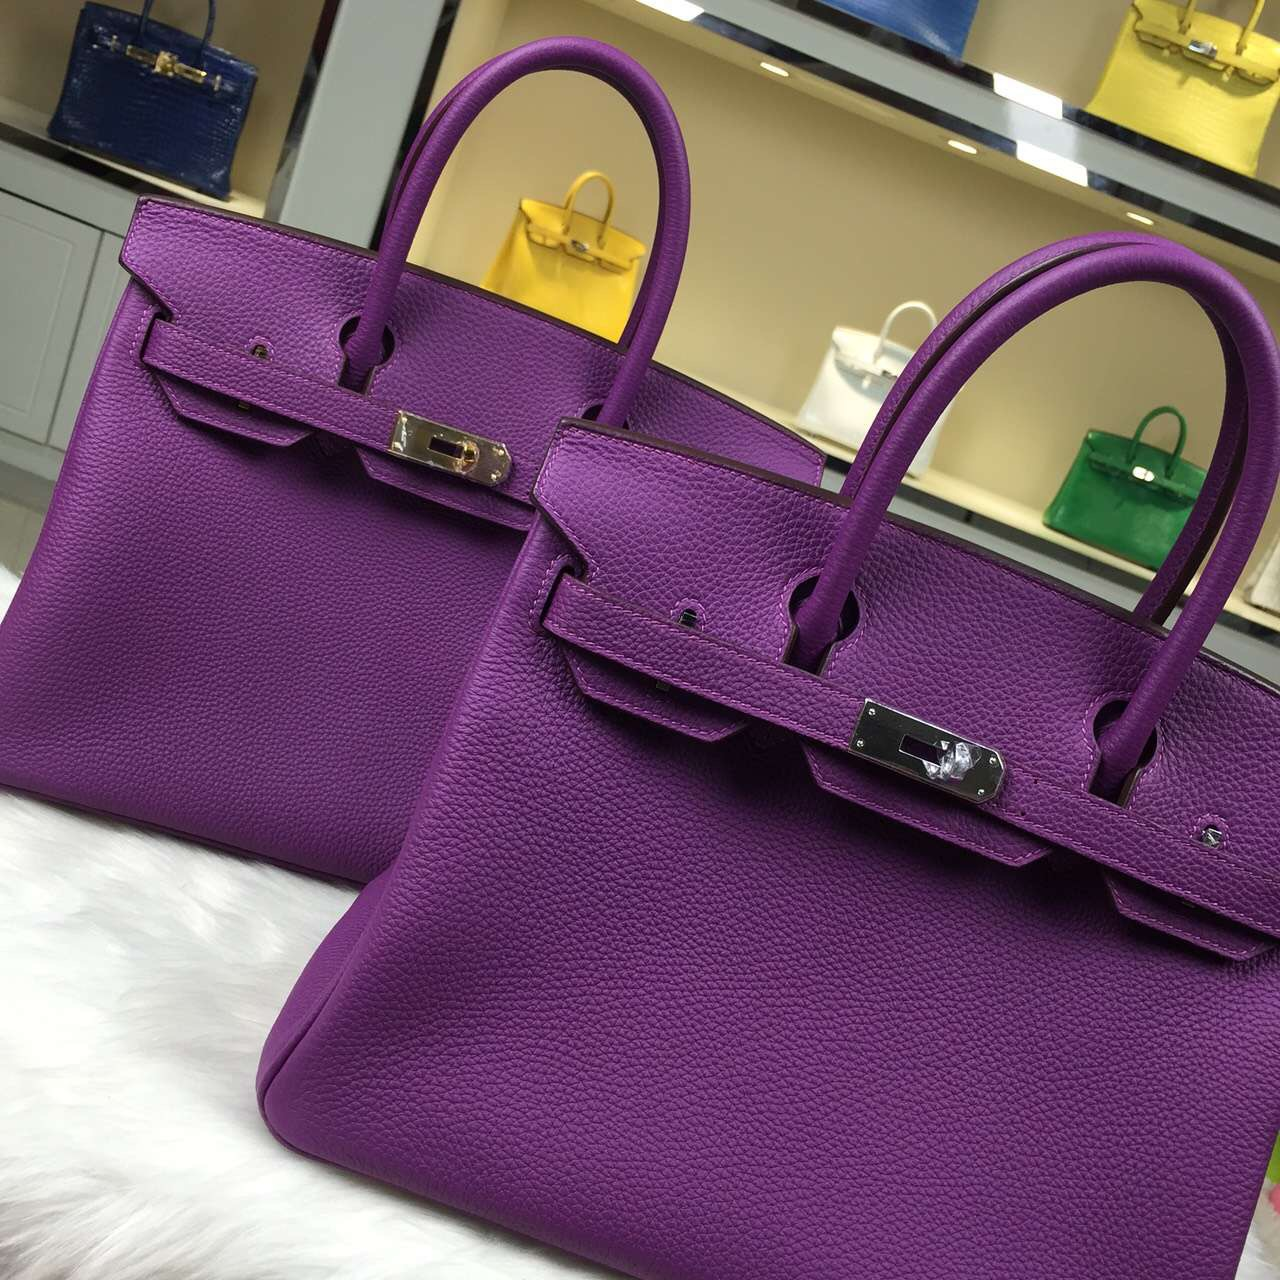 Personal Tailor Hermes P9 Anemone Purple Togo Leather Birkin Bag 30CM